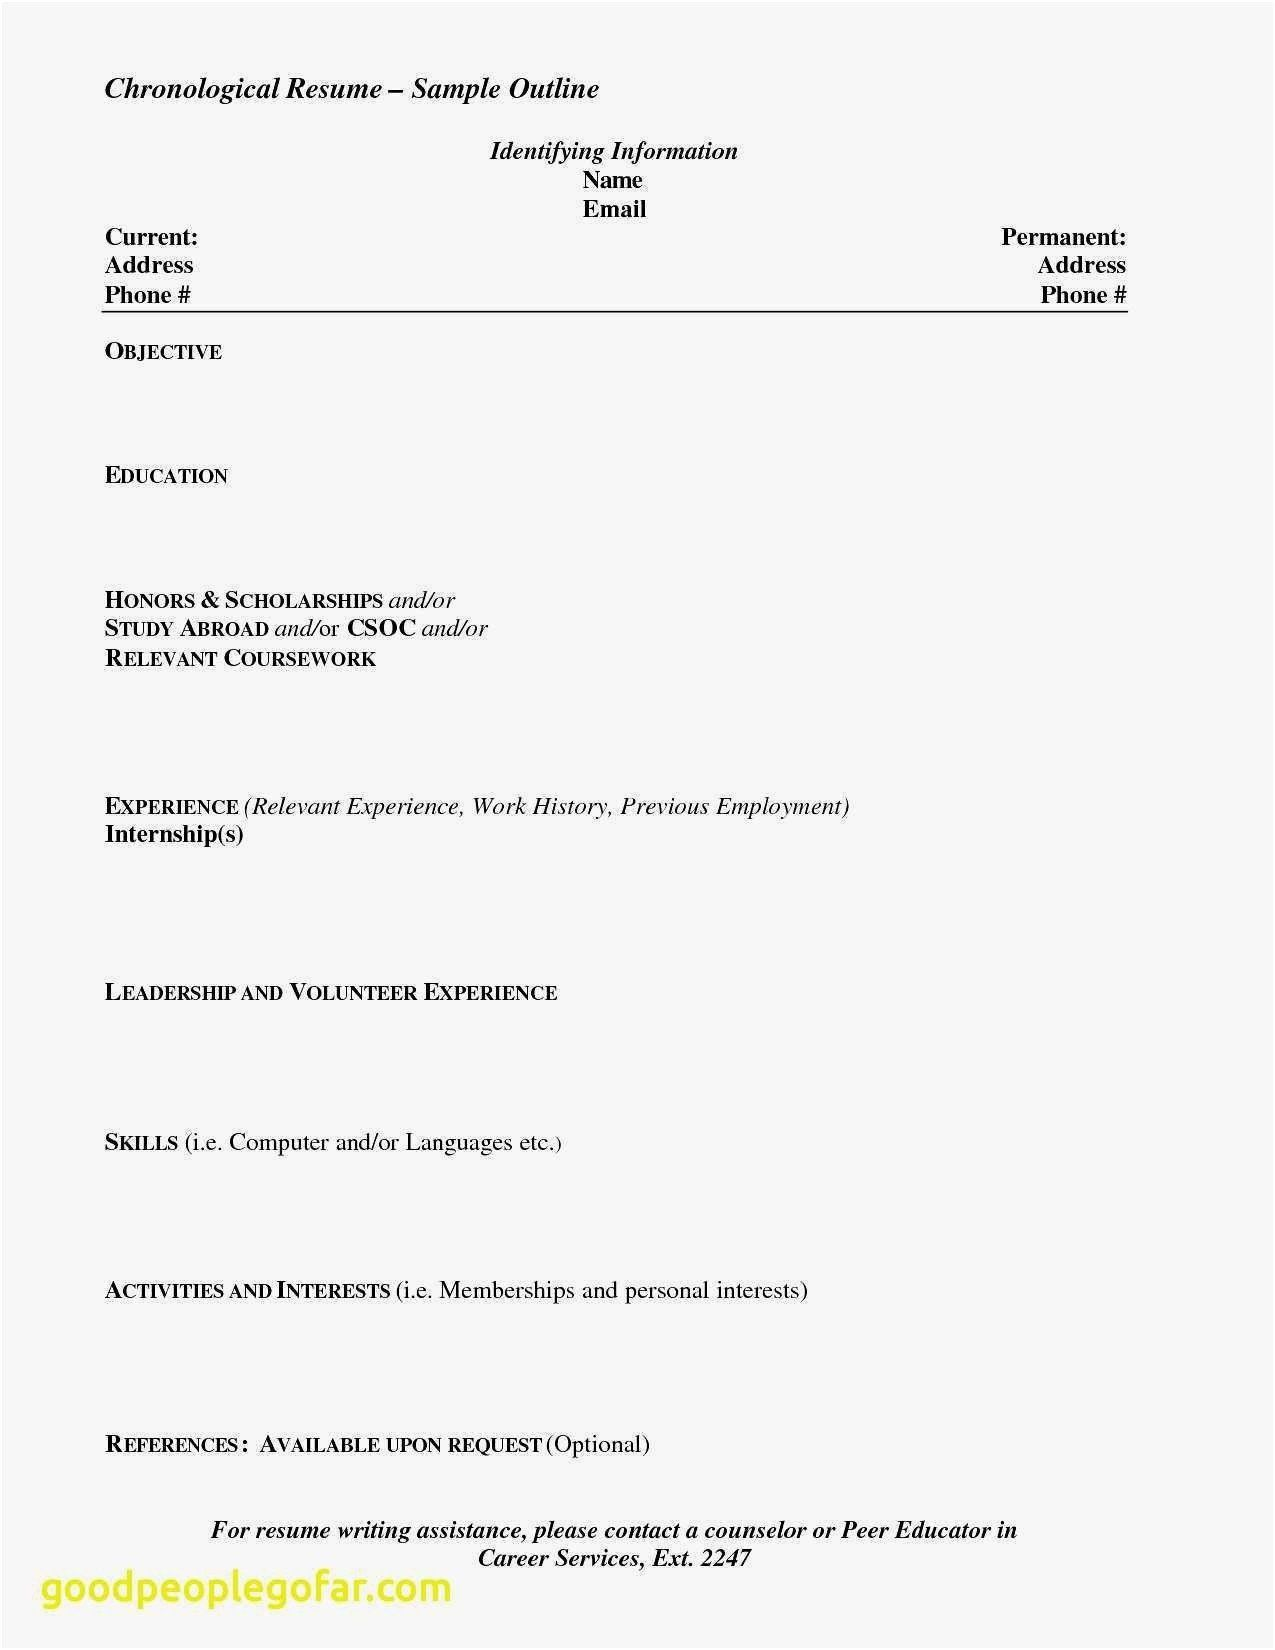 High School Graduate Resume Luxury 13 Resume High School Collection Resume Template Examples Resume Templates Resume Writing Services